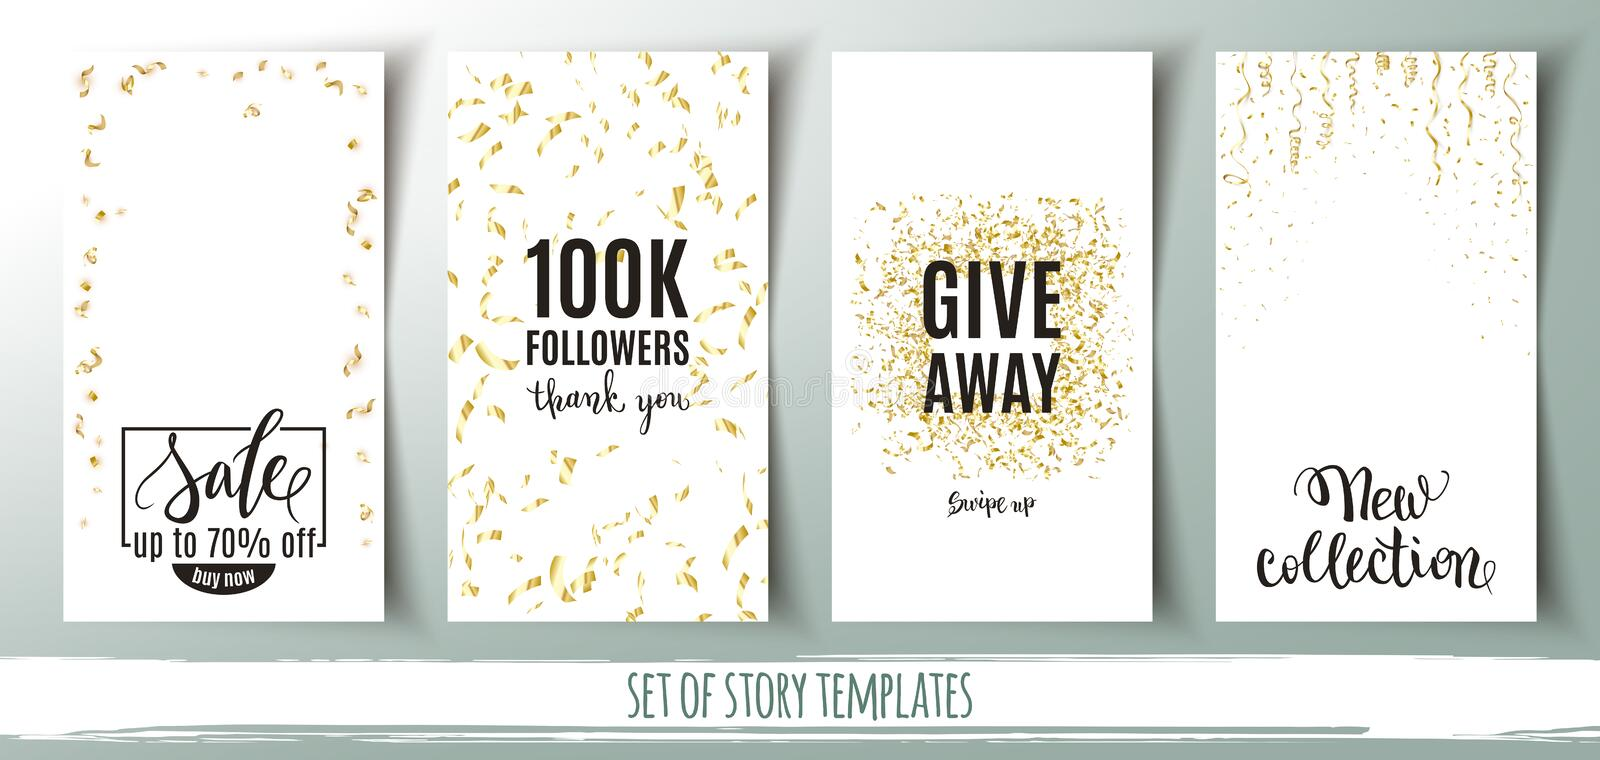 Set of social media story templates, banners with gold confetti background and shopping messages, vector illustration vector illustration